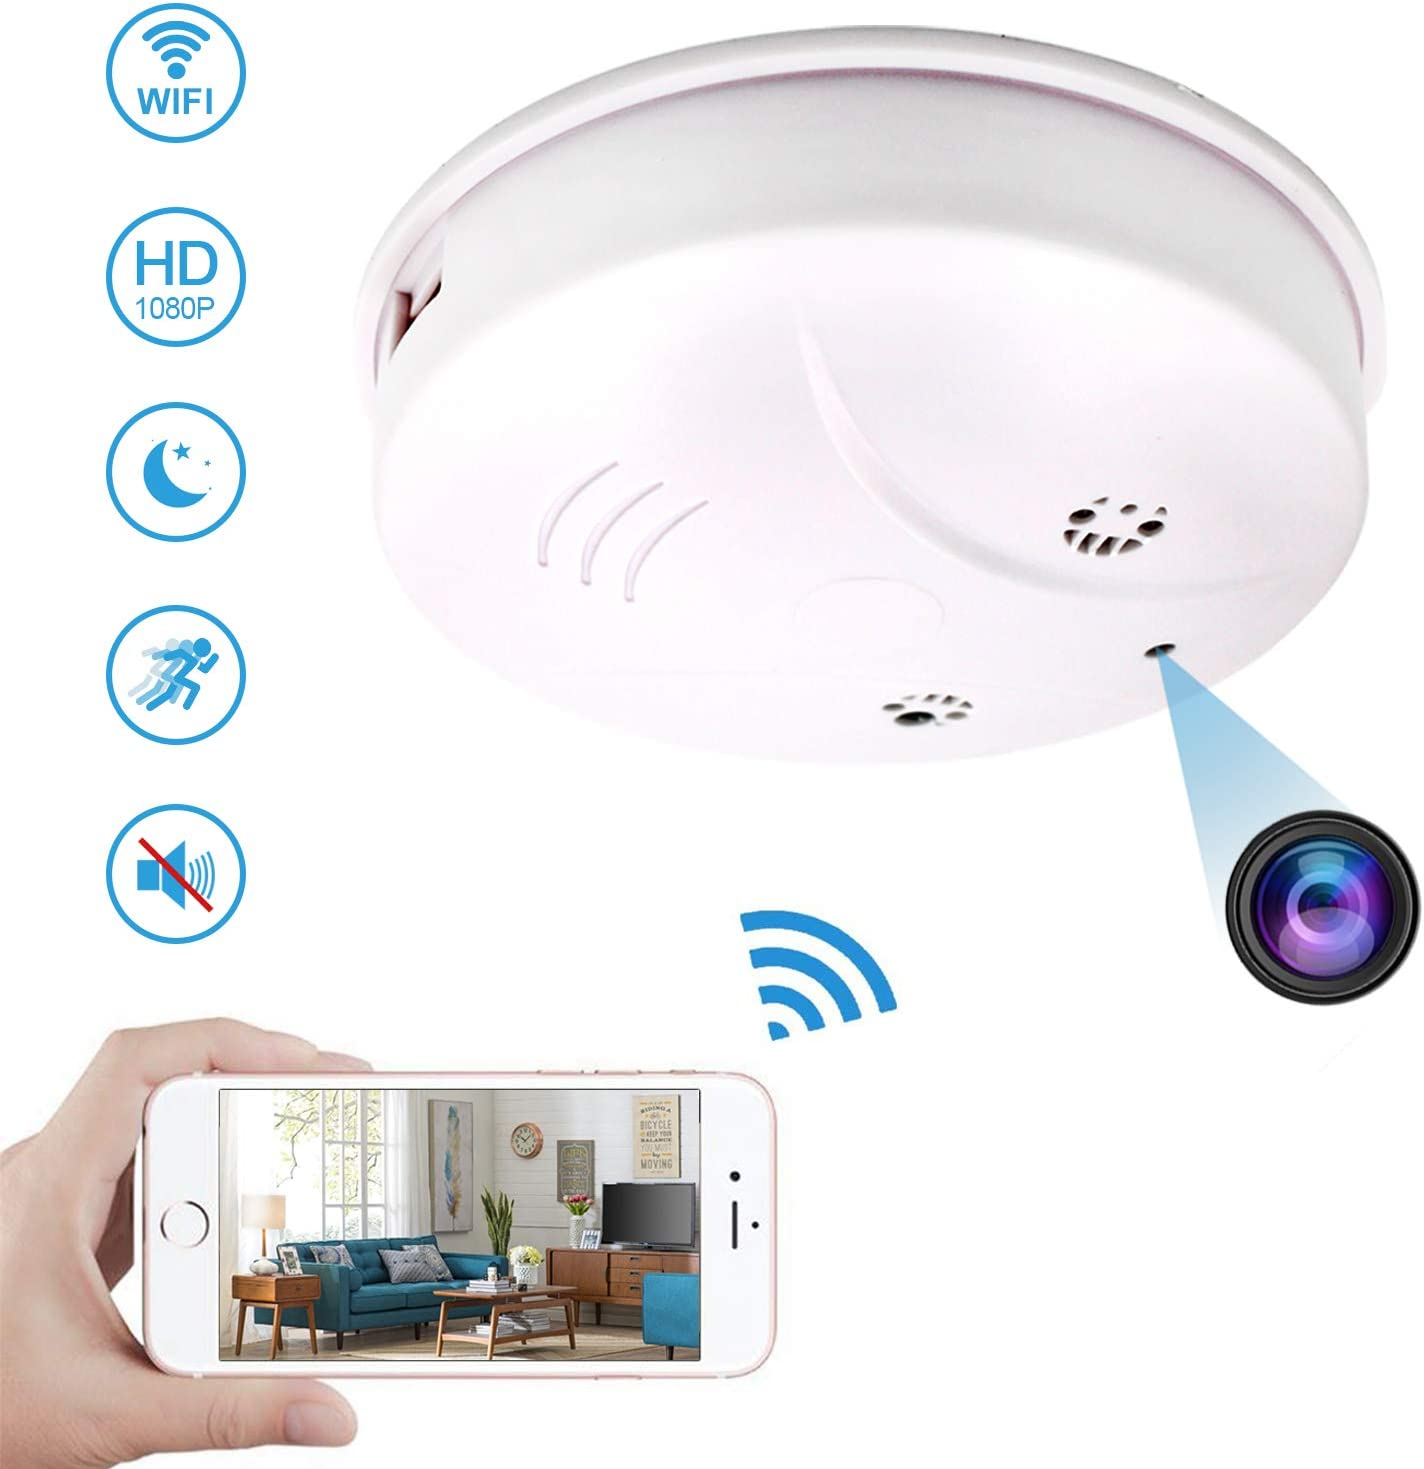 Newwings WiFi Hidden Spy Camera Smoke Detector with Night Vision and Motion Detection, Nanny Cam Mini Video Recorder Security Cameras for Home Office